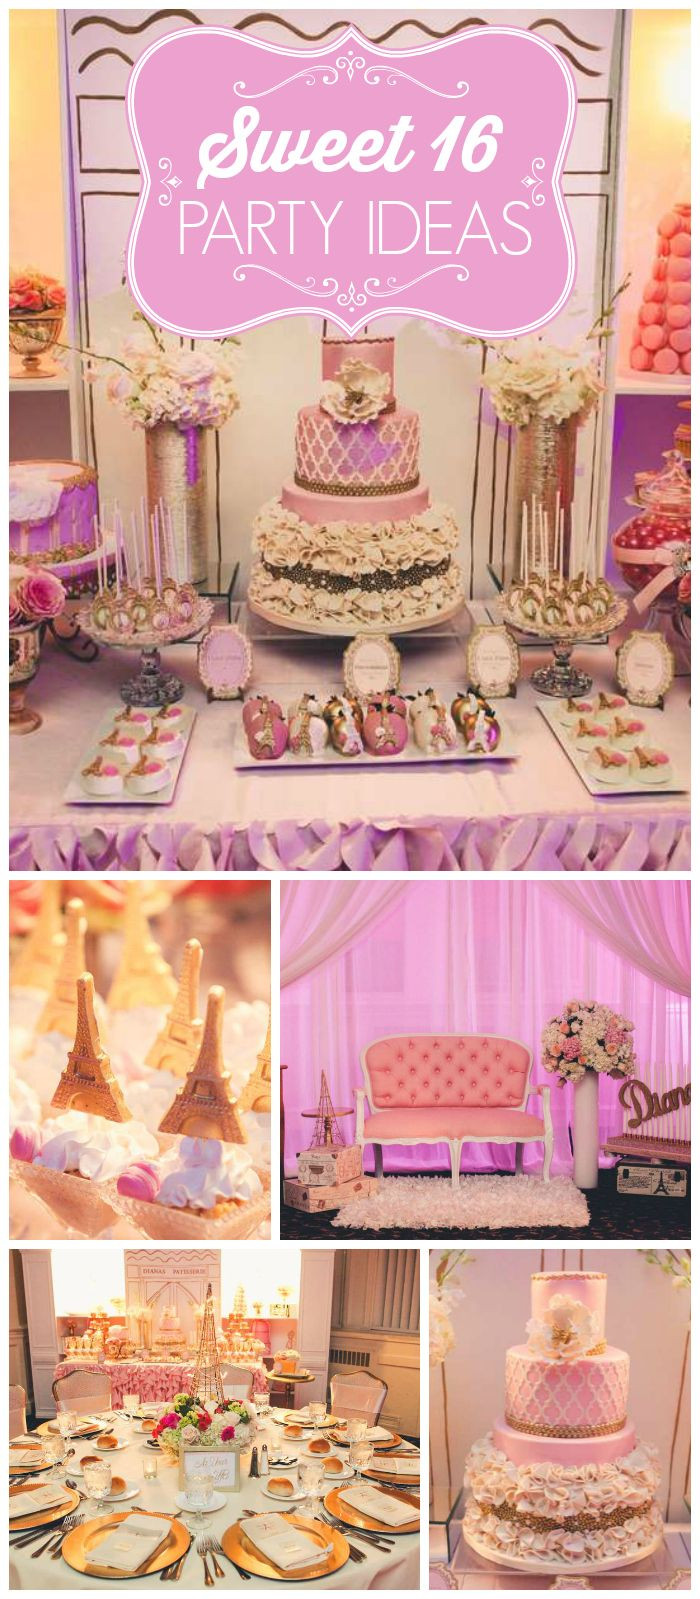 Best ideas about Sweet 16 Birthday Party . Save or Pin 1000 ideas about Paris Sweet 16 on Pinterest Now.